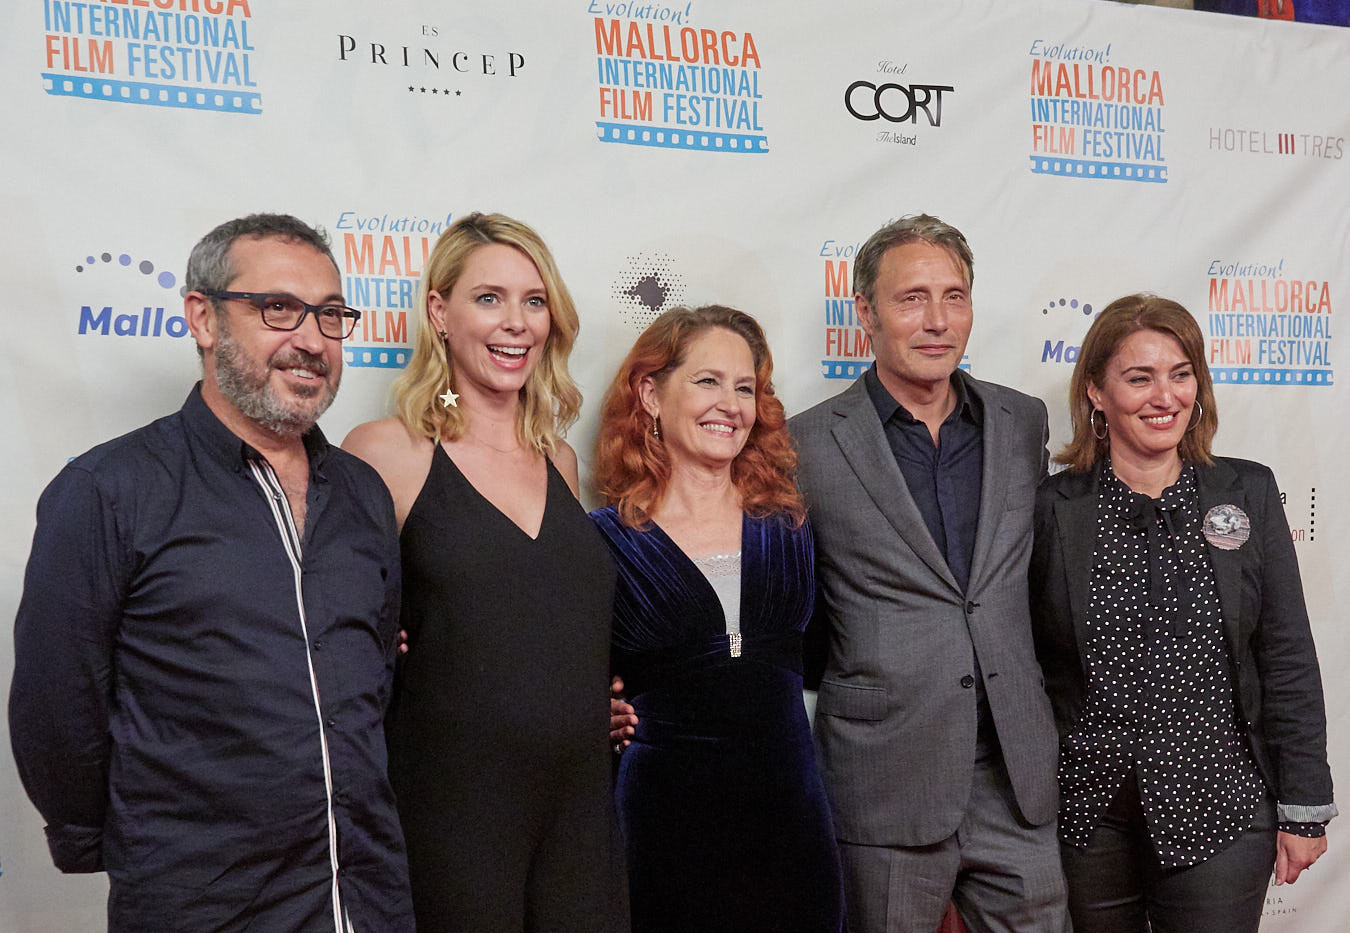 Mallroca officials with EMIFF guests